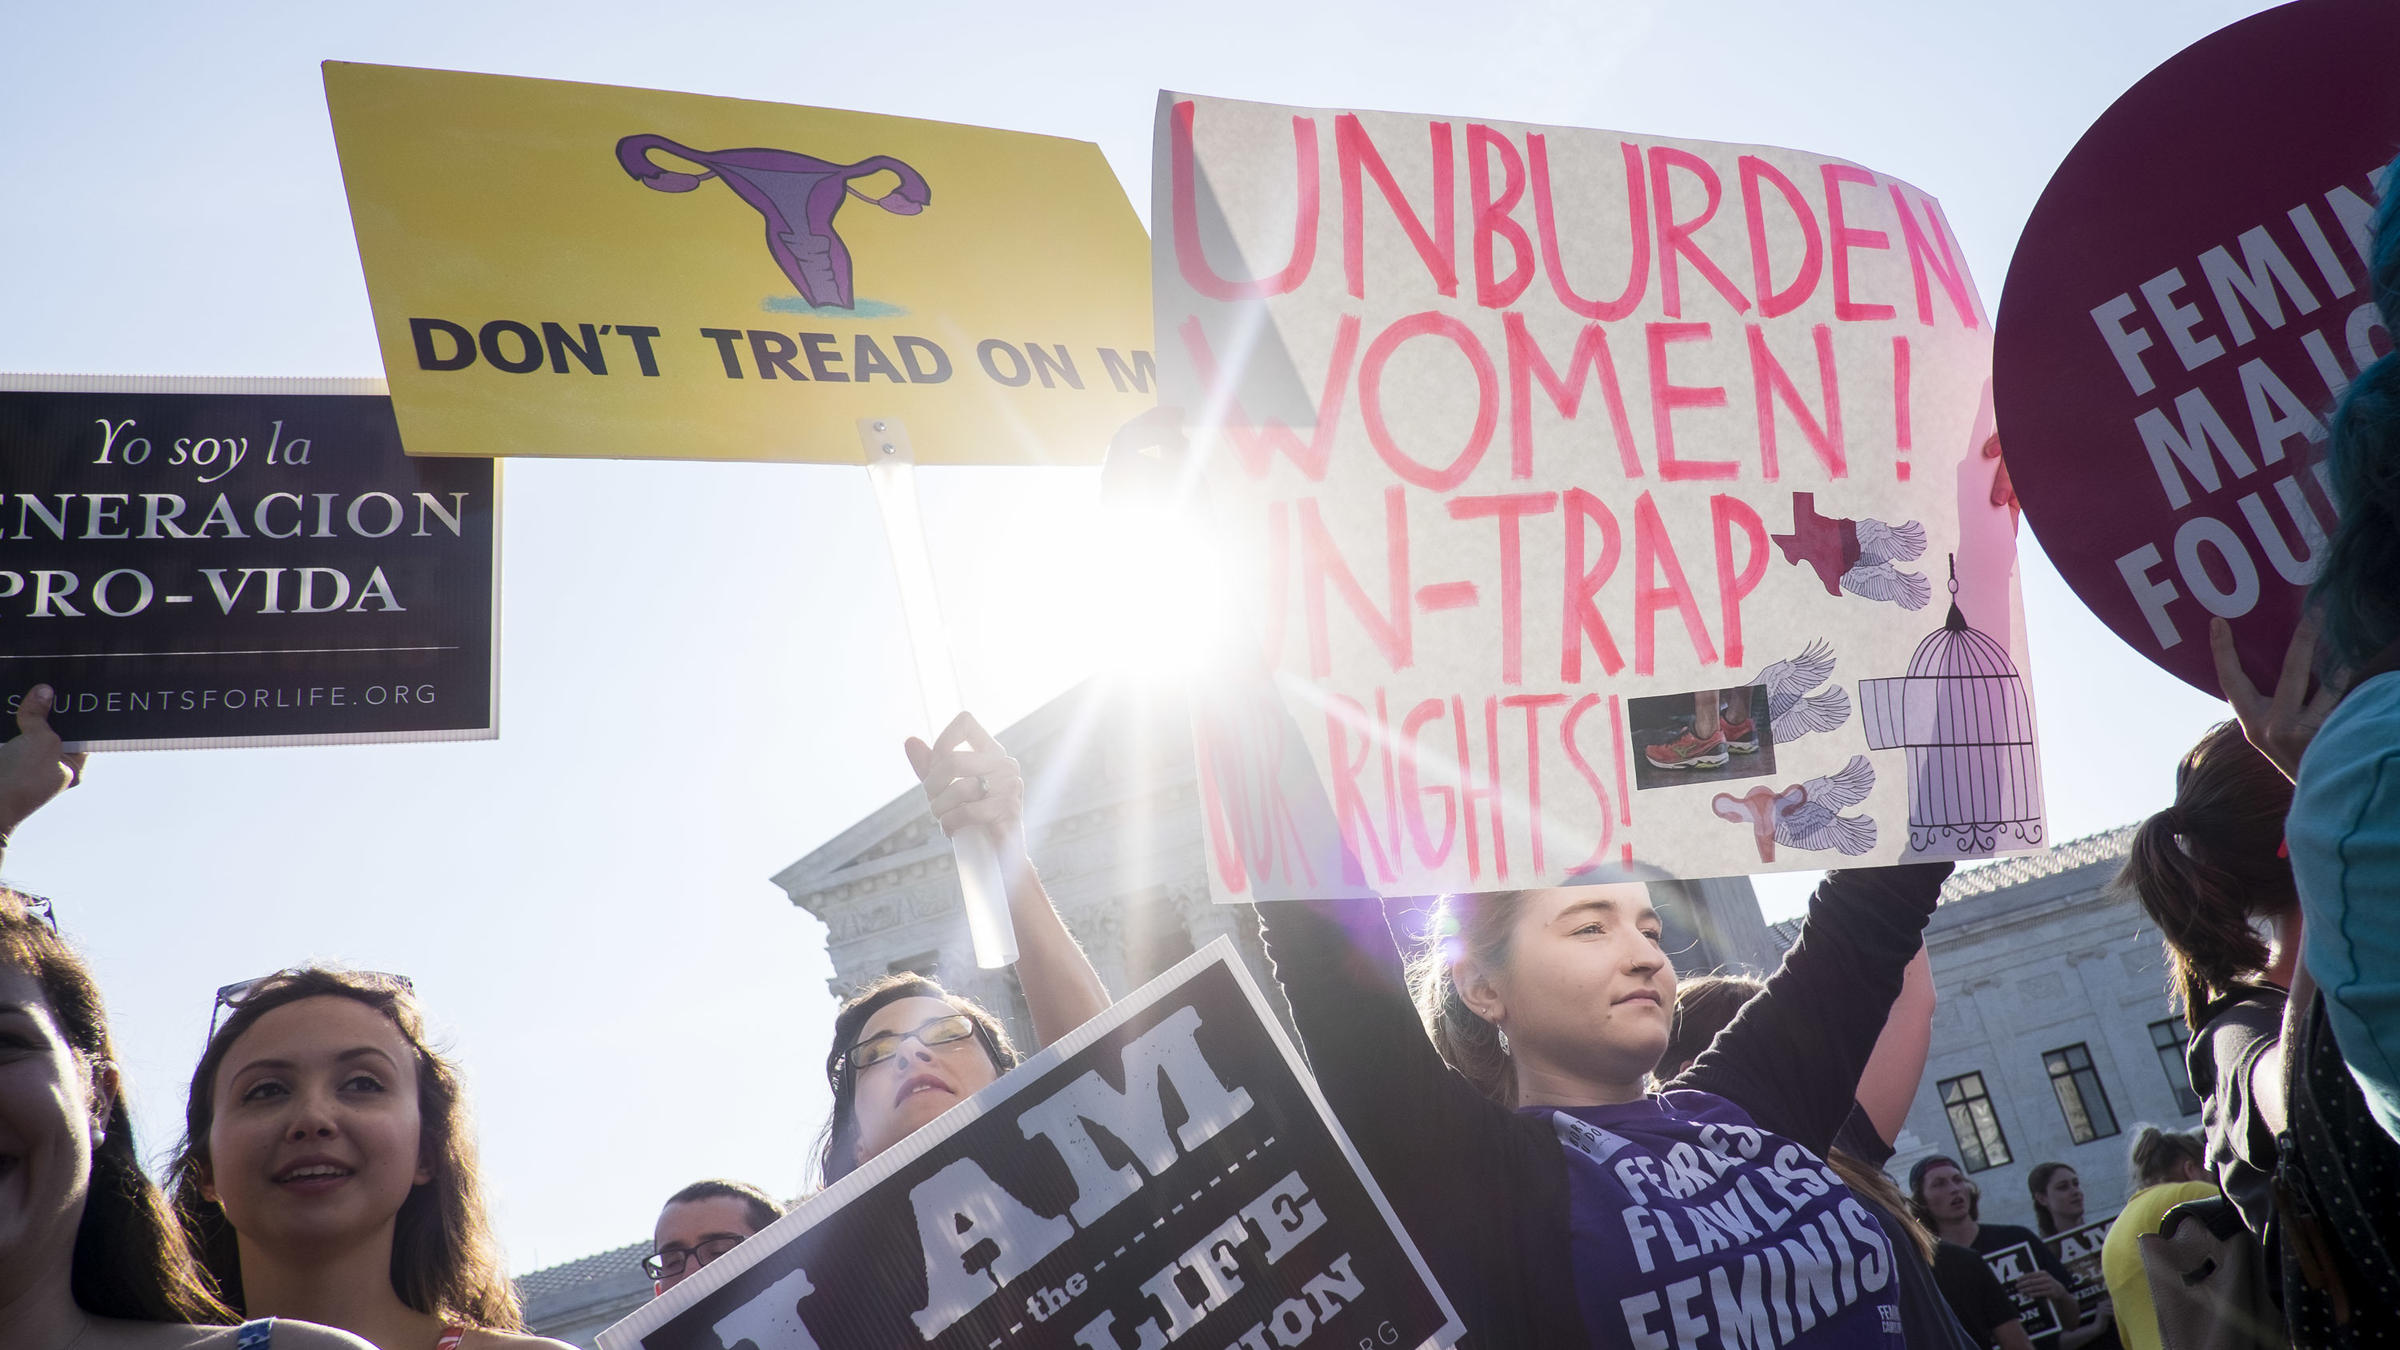 abortion and the supreme court After weeks of delay, the supreme court is expected to make a decision soon on an unusual request from the trump administration in a politically charged abortion case.